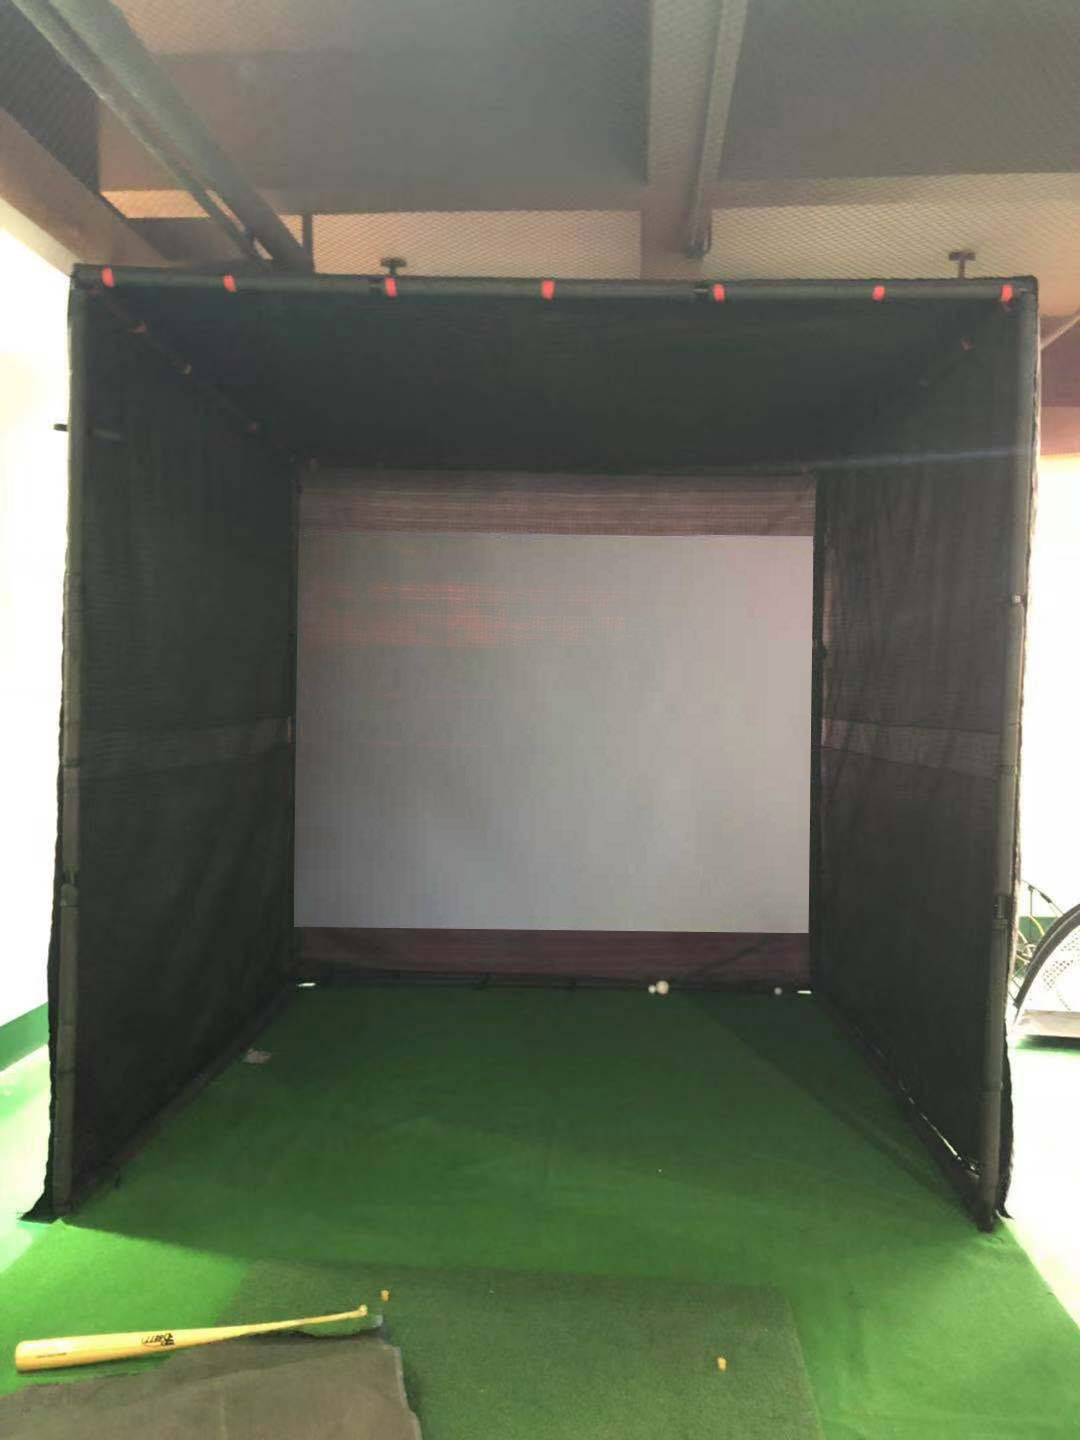 2  Layer Hot sale high quality  golf practice net black  shading  golf net of 3D Golf simulator